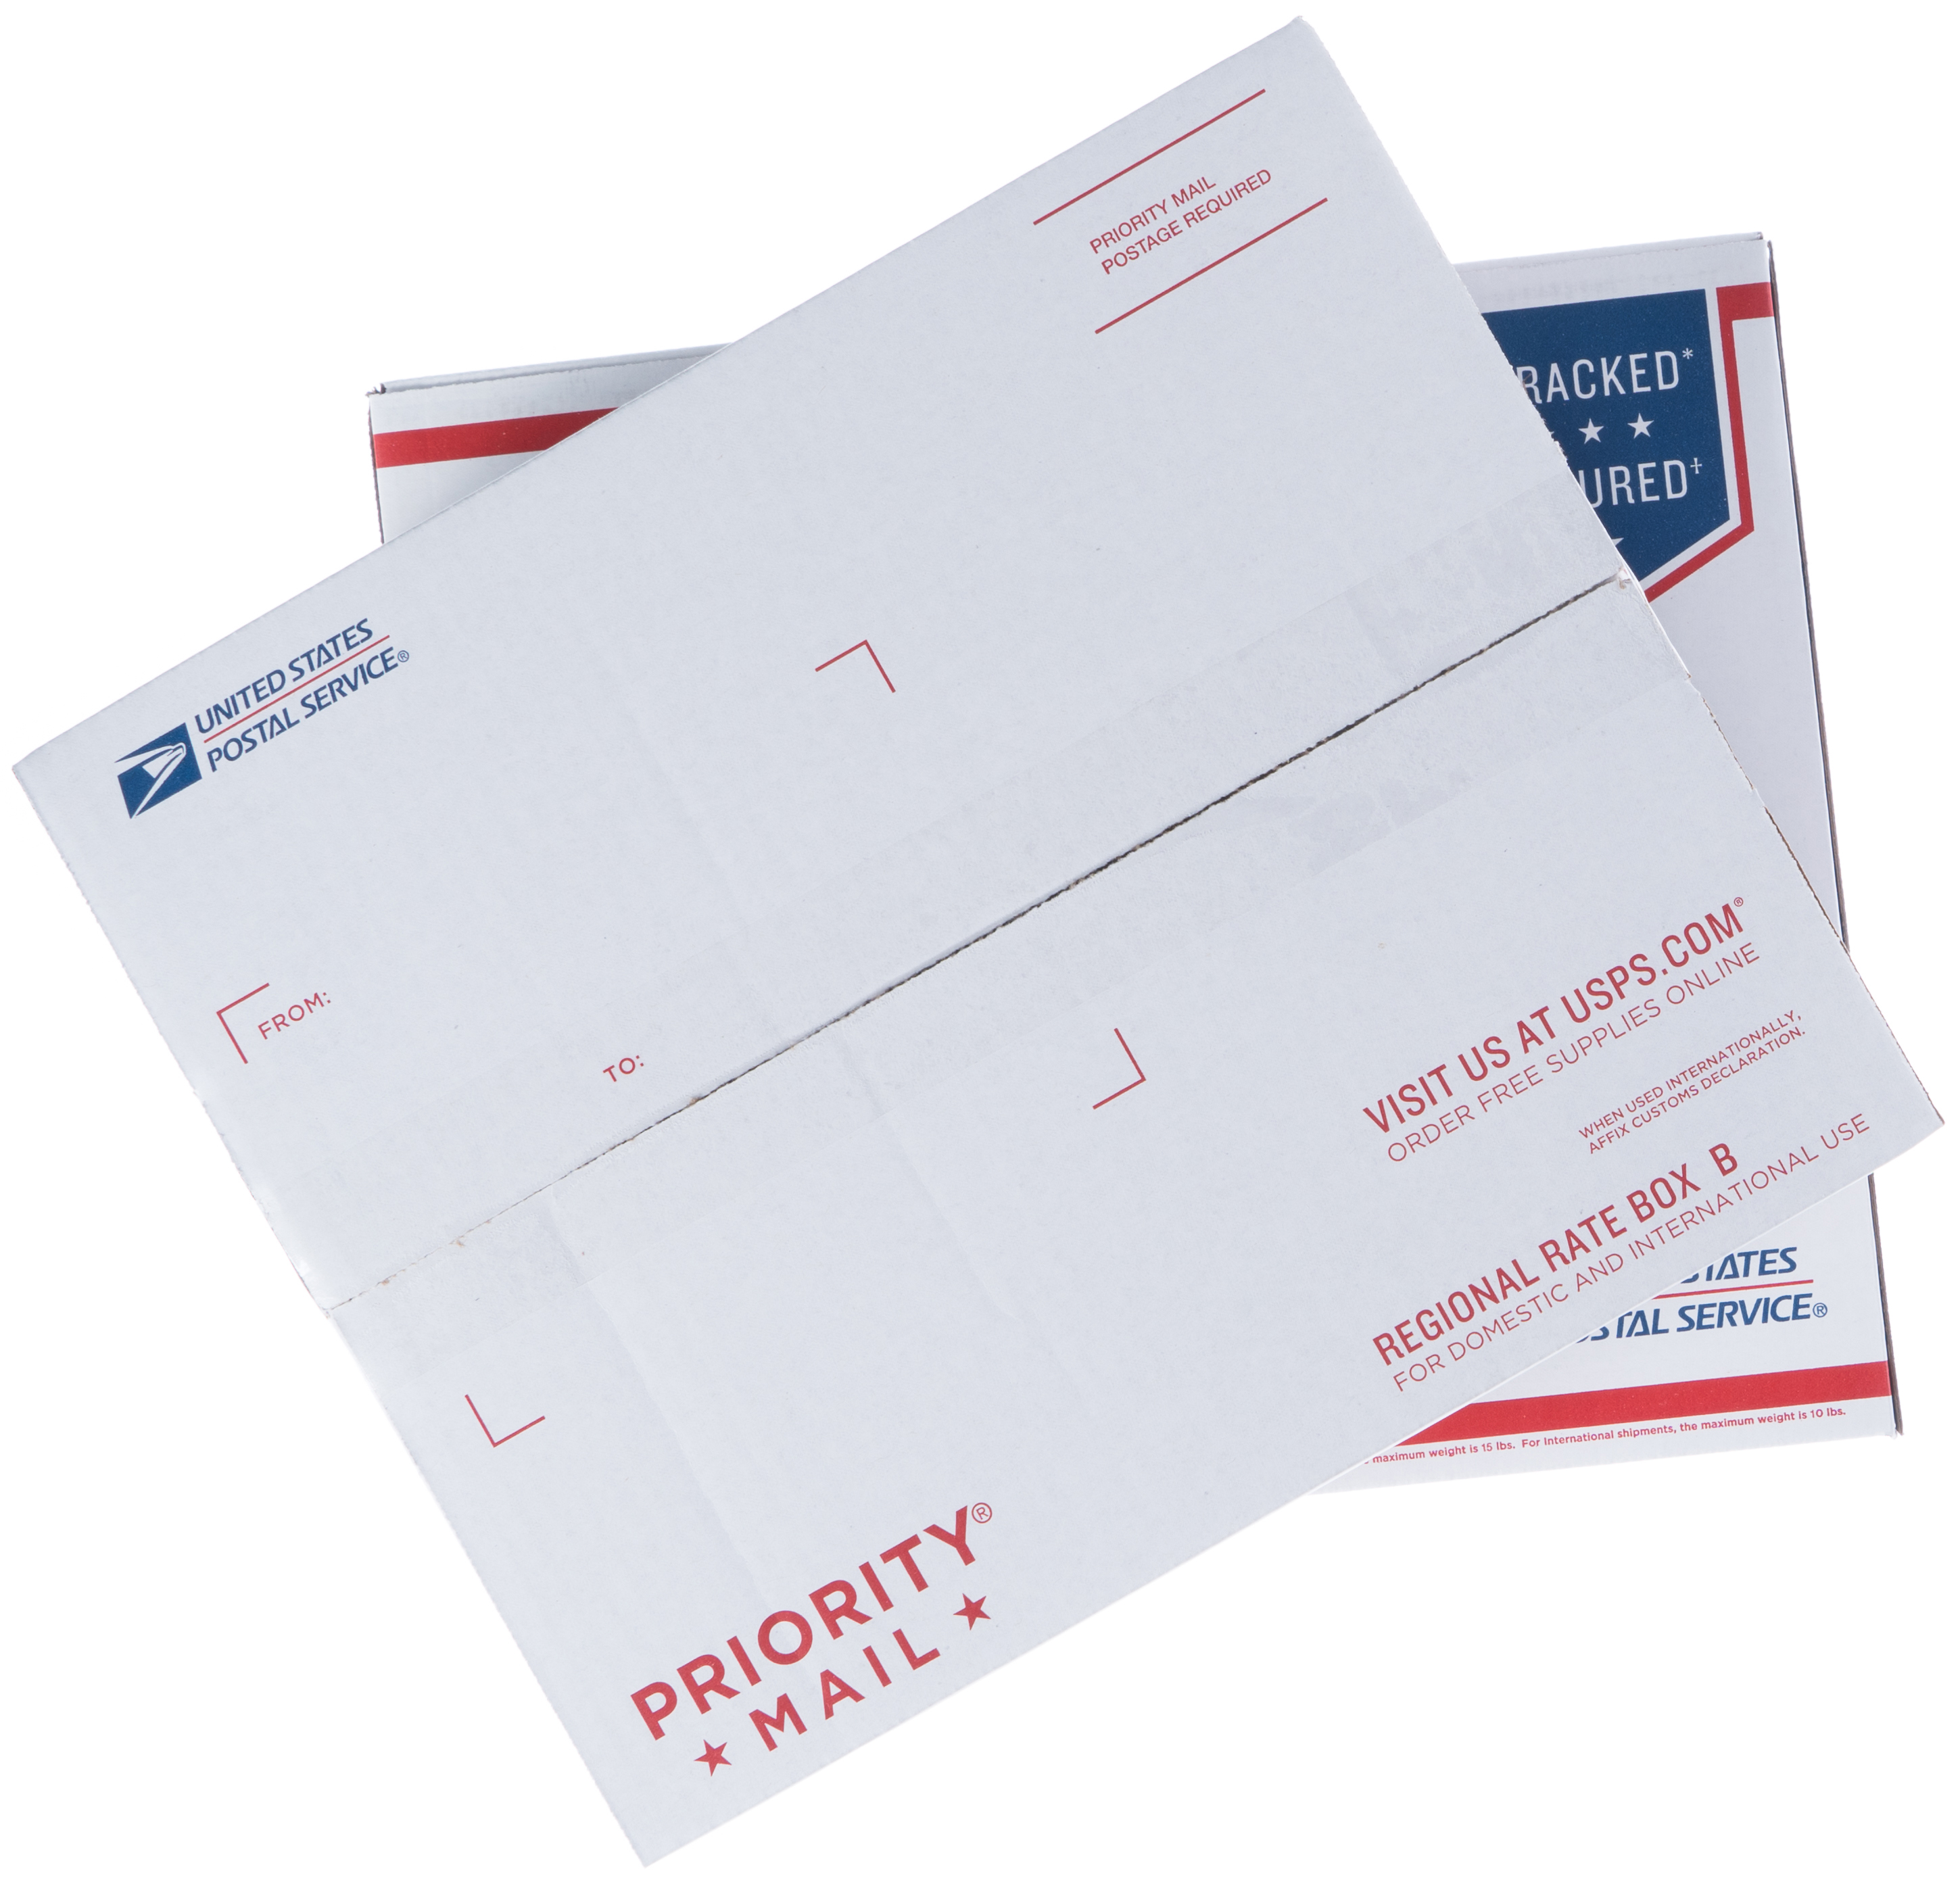 USPS Regional Rate boxes